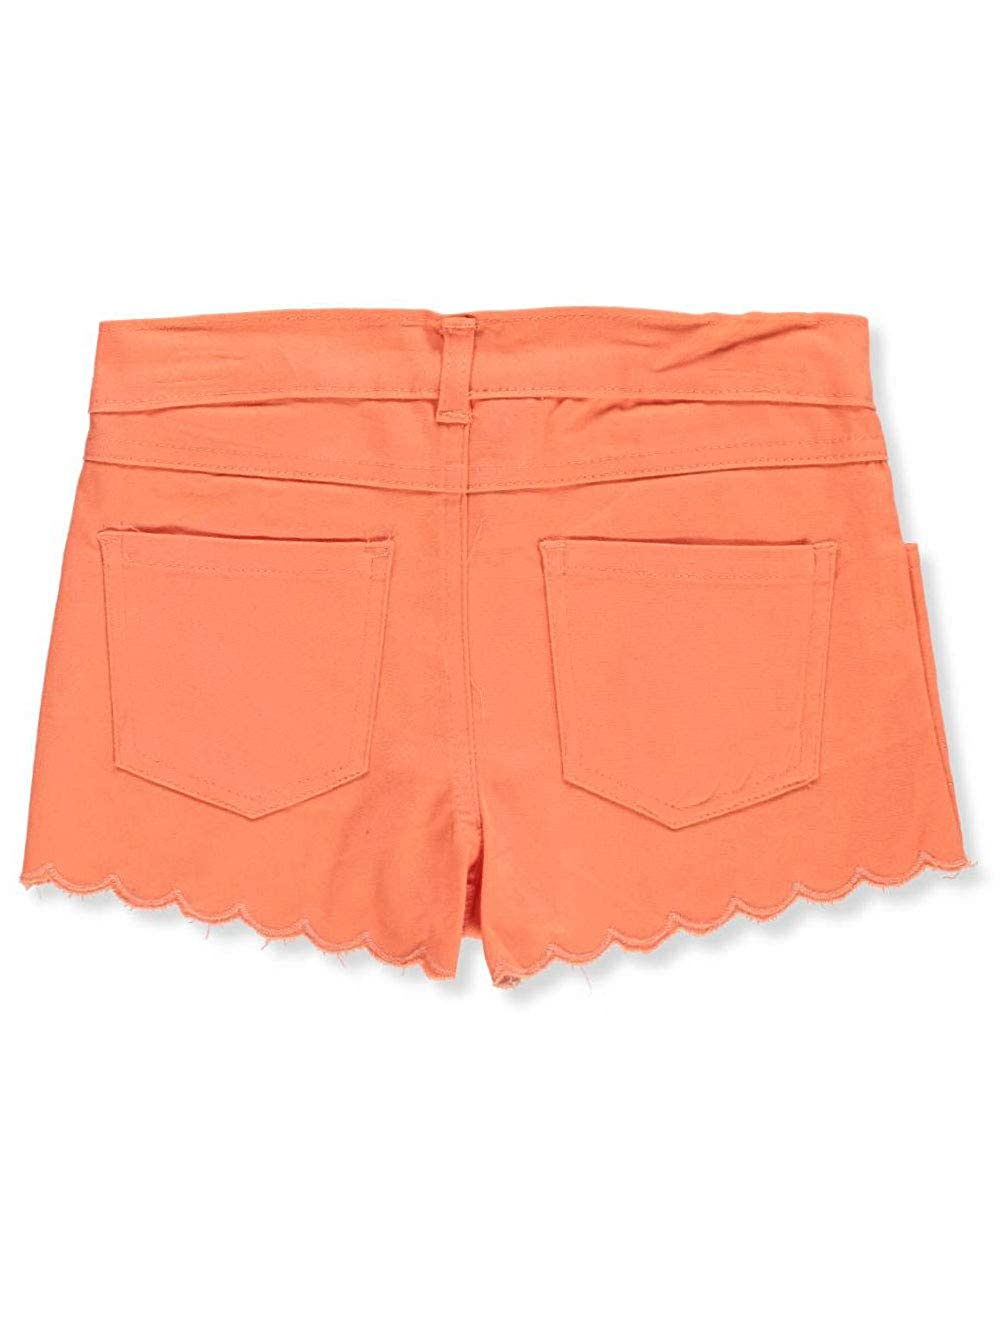 Famous Brand Girls 2-Piece Short Set Outfit